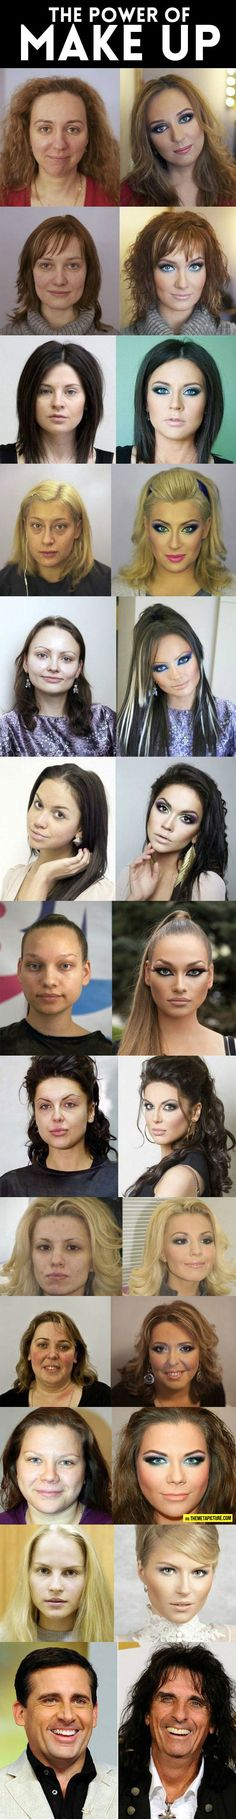 the power of make up. It's really false advertising